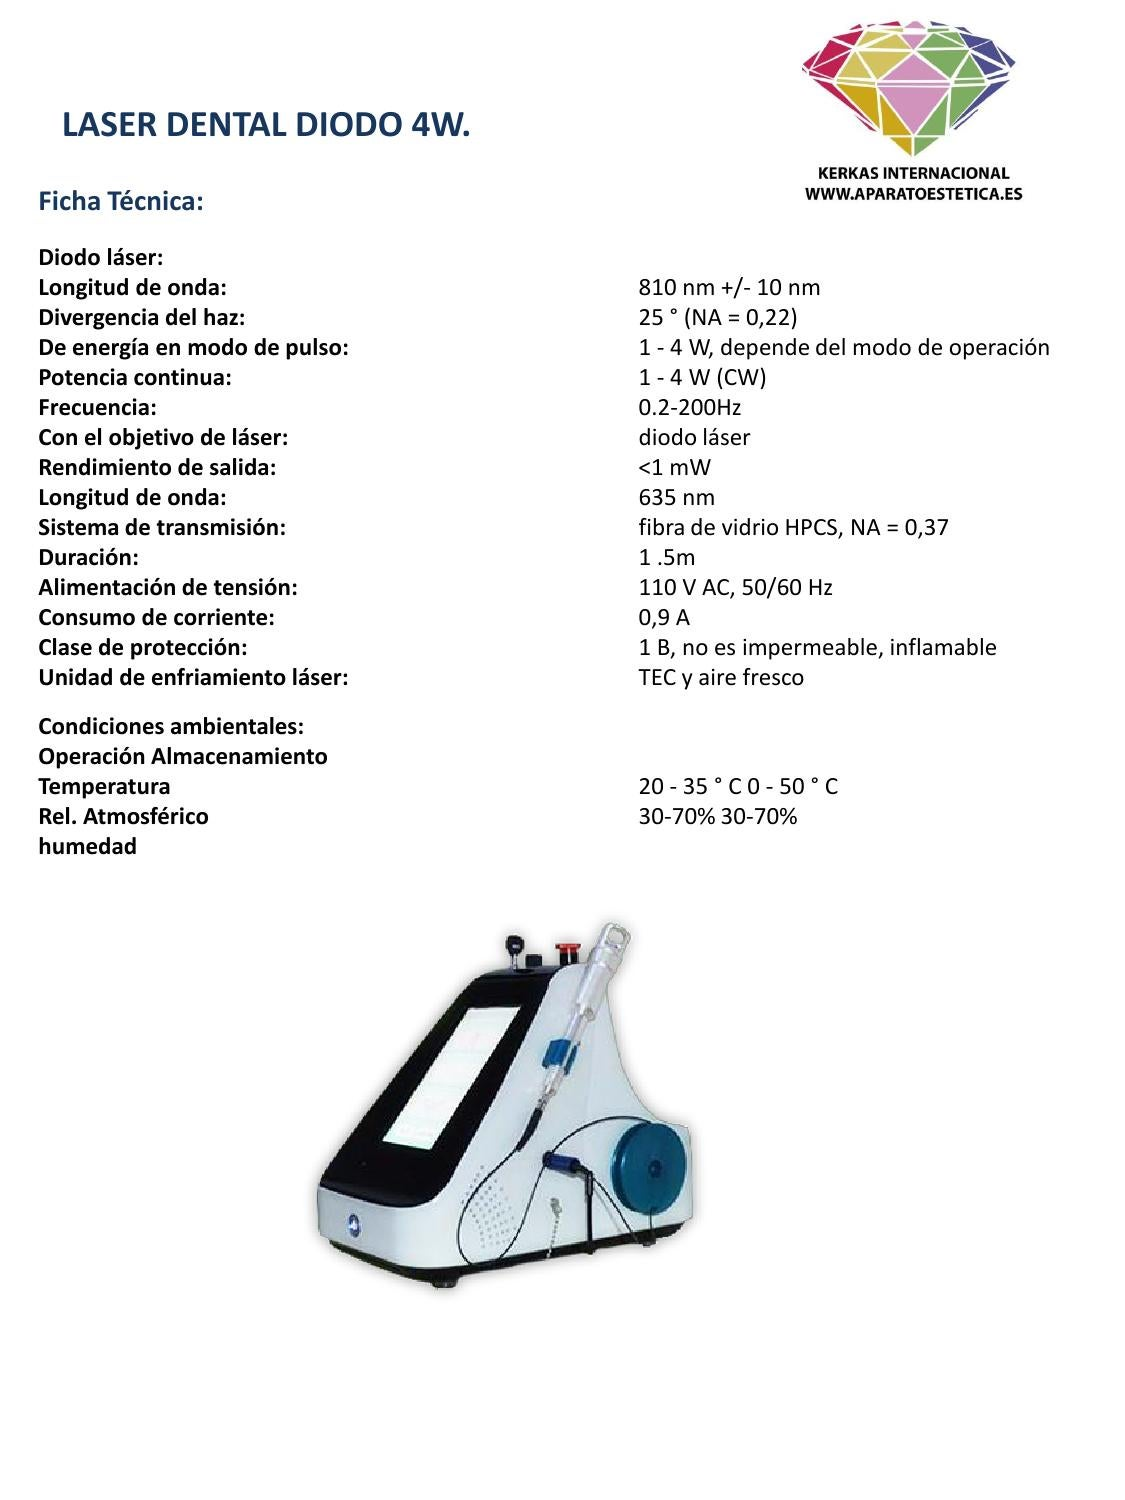 Laser dental 4w ficha tecnica by kercas internacional issuu for Tecnica modo 10